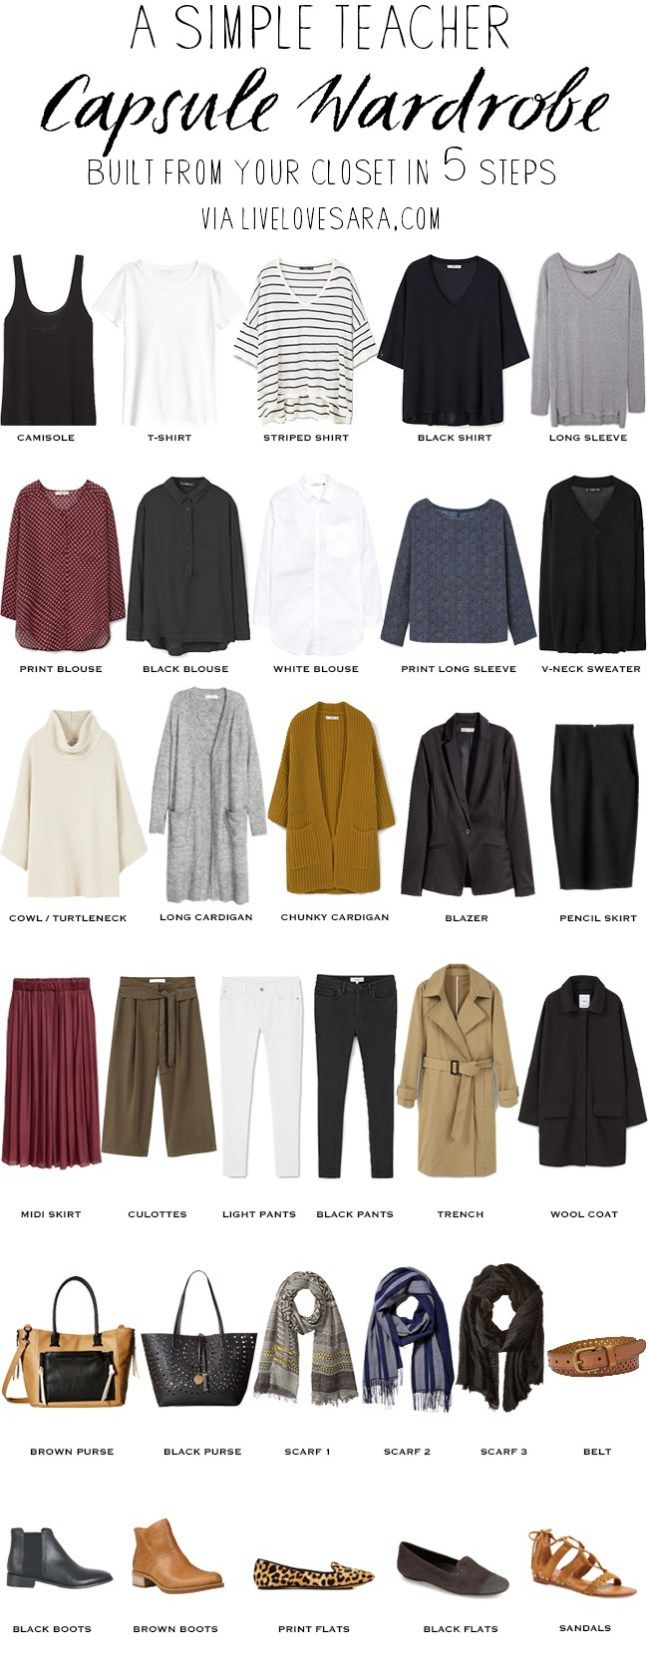 A simple Teacher capsule wardrobe in 5 steps Built from your closet #capsule #capsulewardrobe #teacherwardrobe